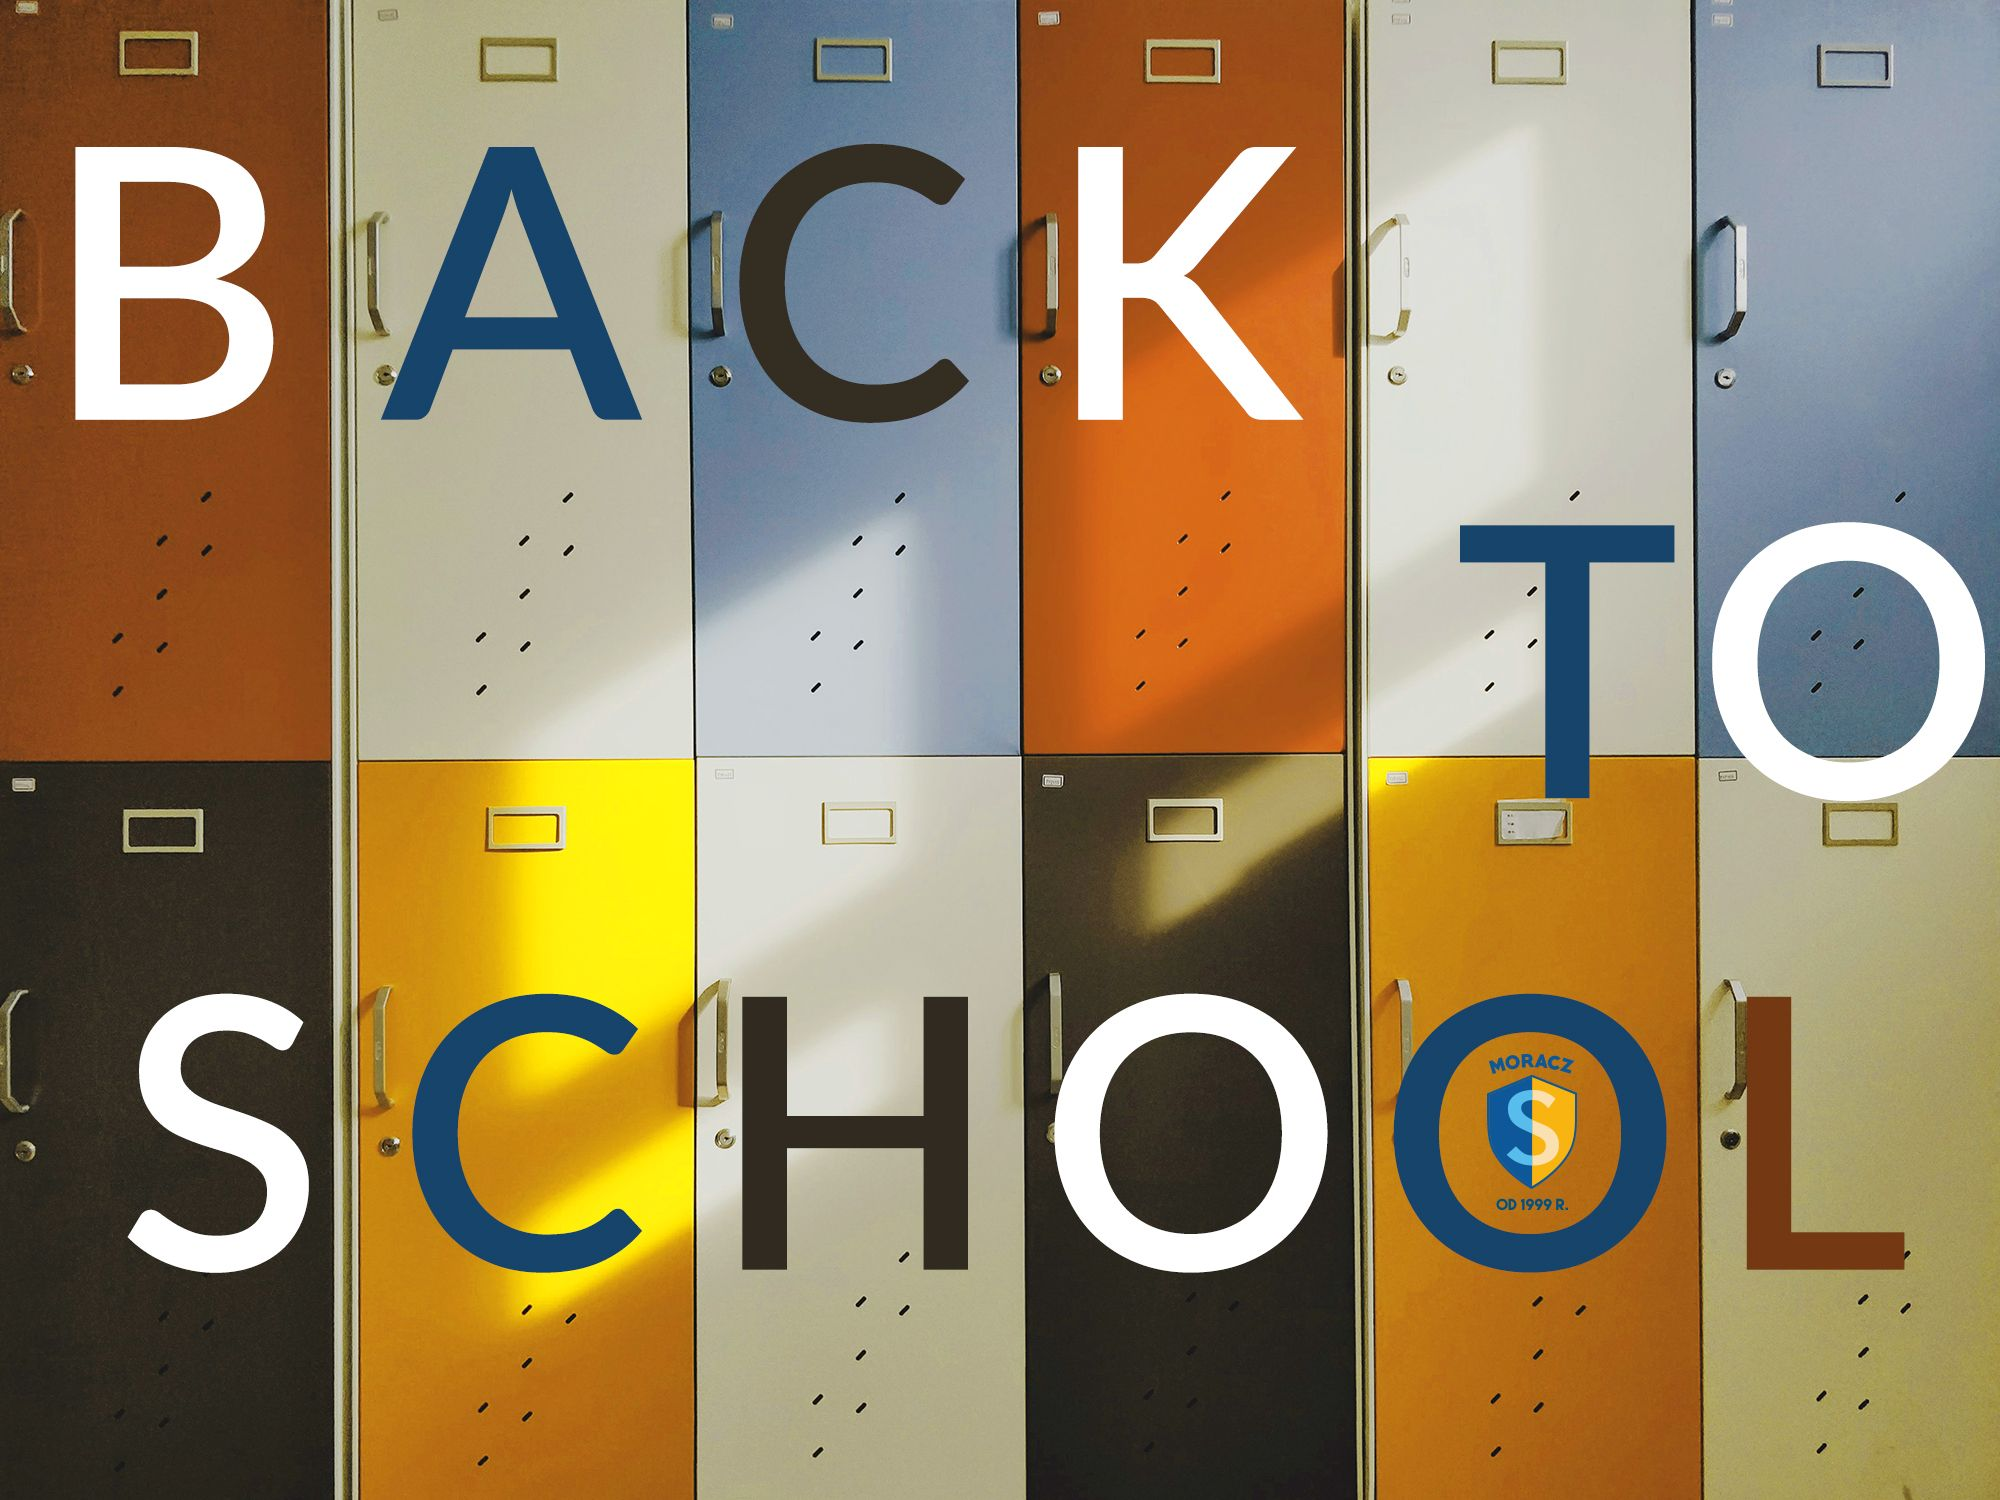 BACK TO SCHOOL!!!